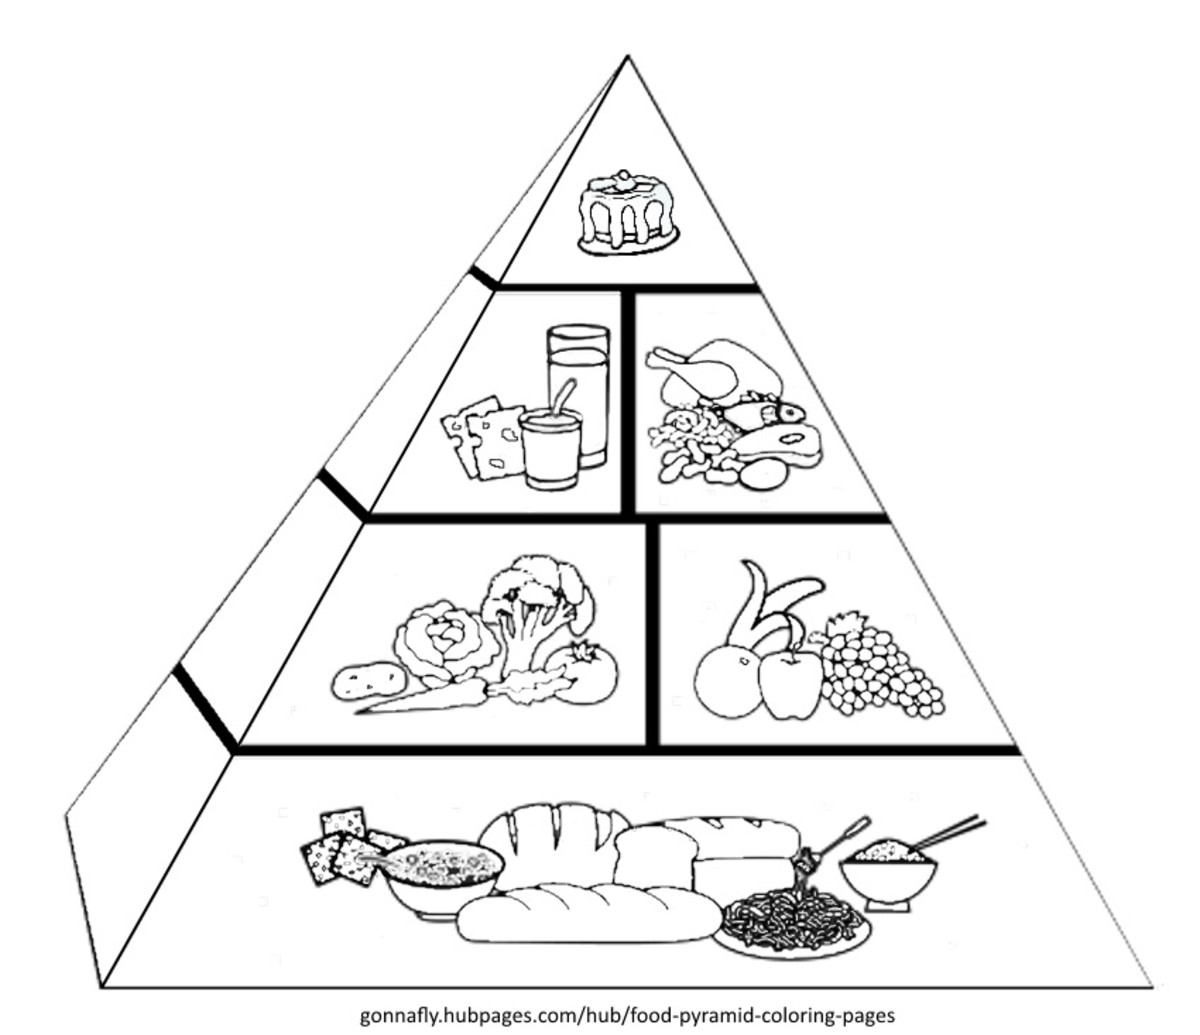 Food Pyramid Coloring Sheet Pictures to Pin on Pinterest  PinsDaddy